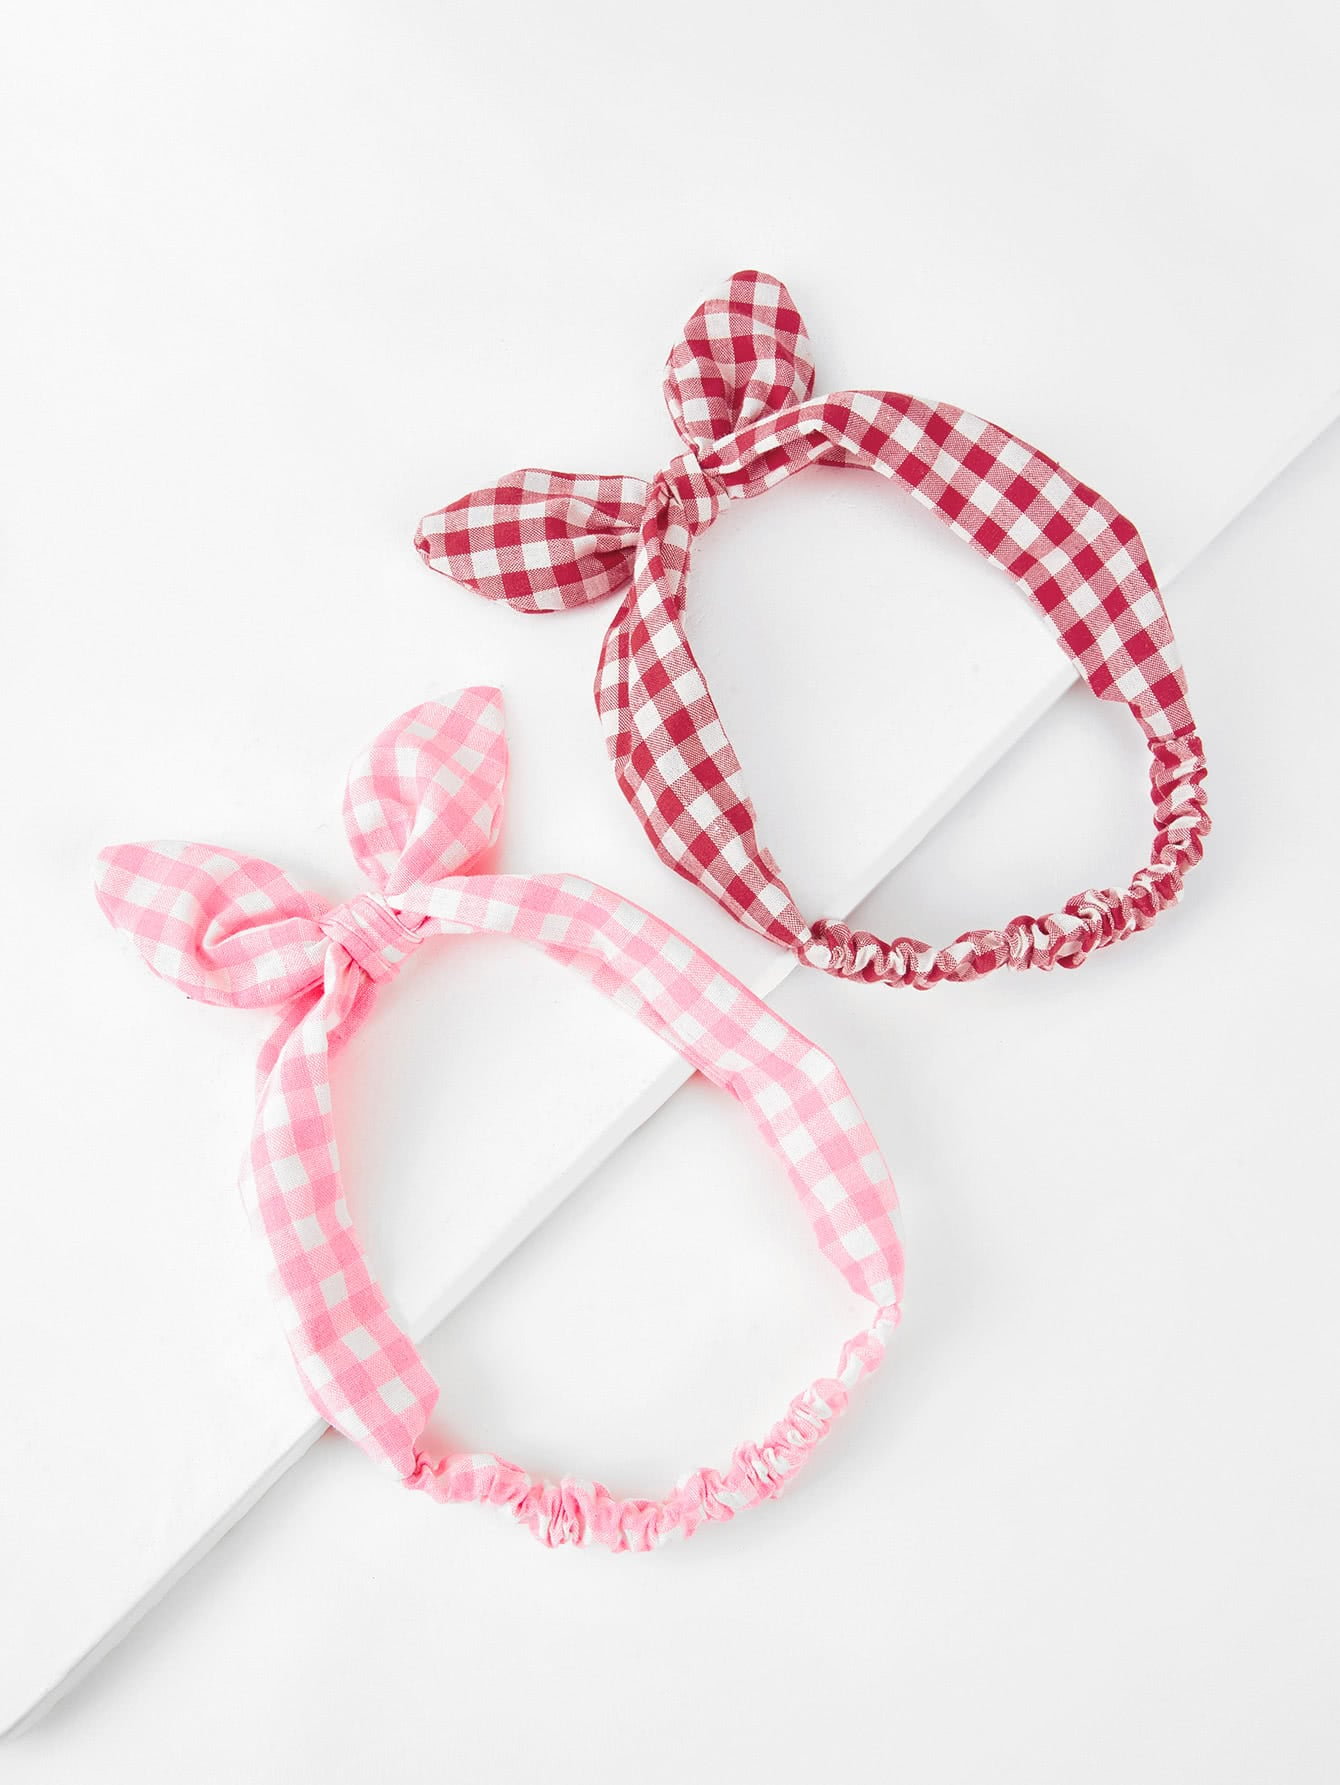 Knotted Bow Gingham Headband 2pcs knotted bow gingham headband 2pcs